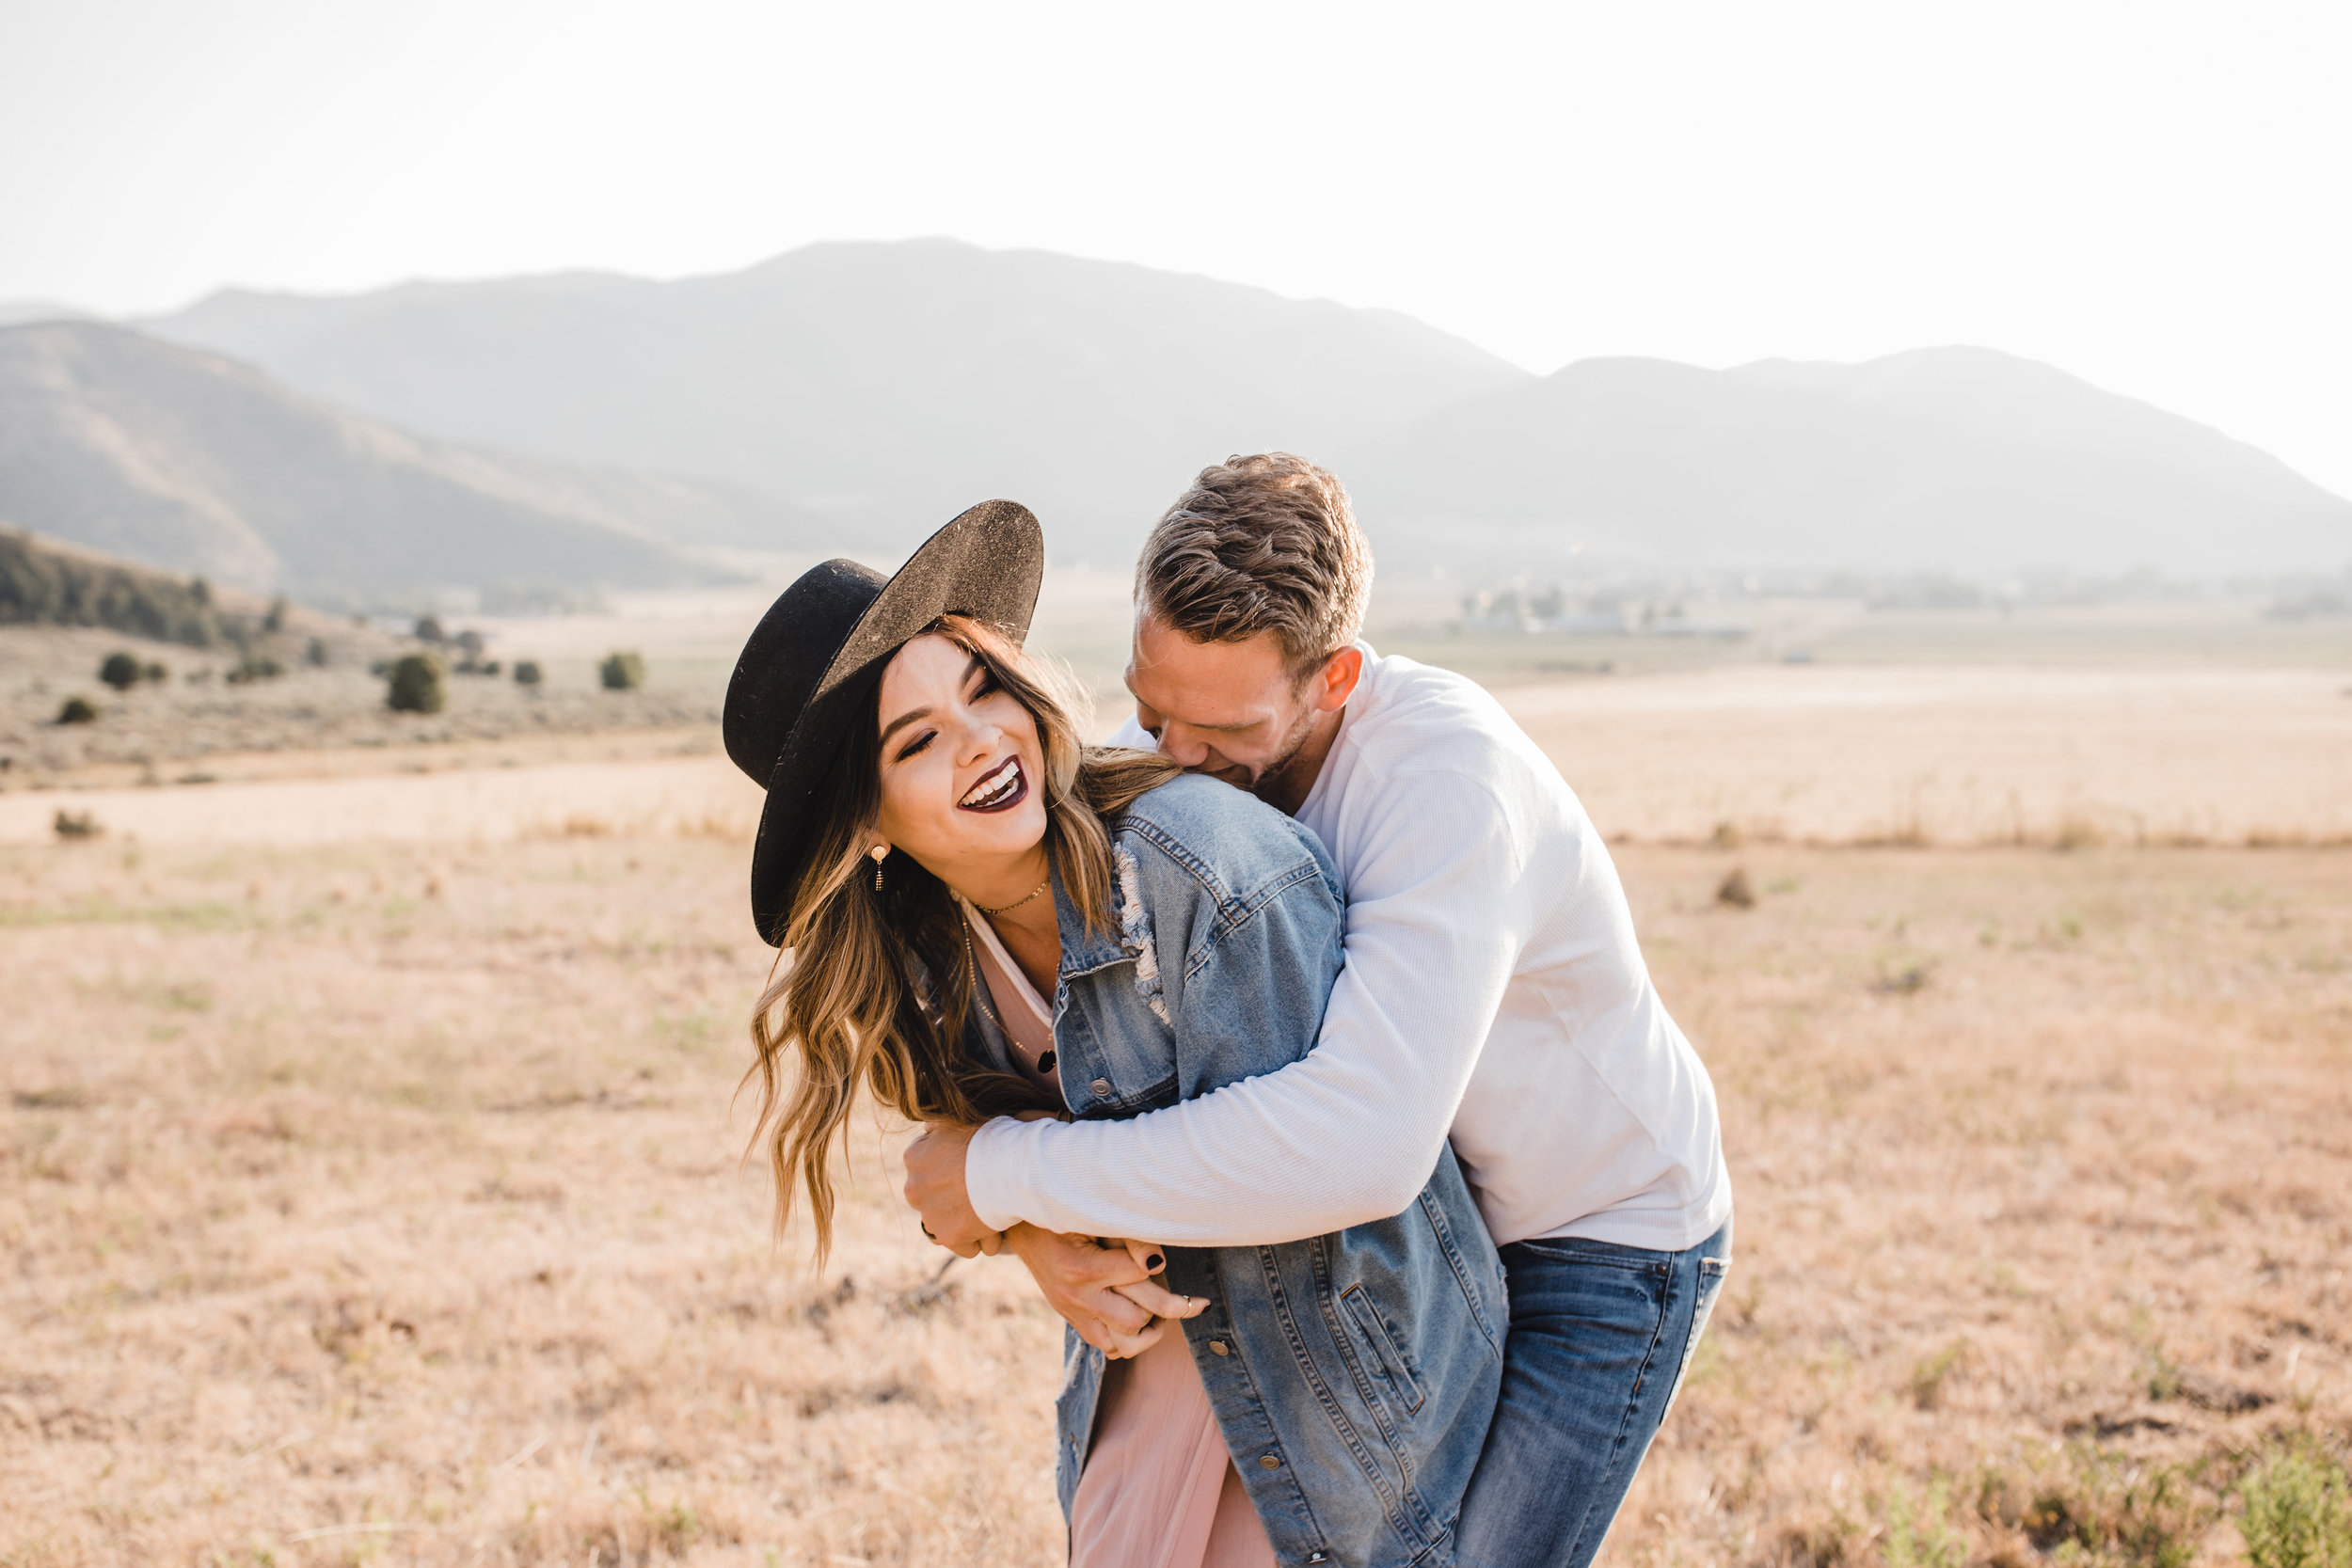 professional couples photographer in mantua utah mountains fields sunhat hugging playful laughing